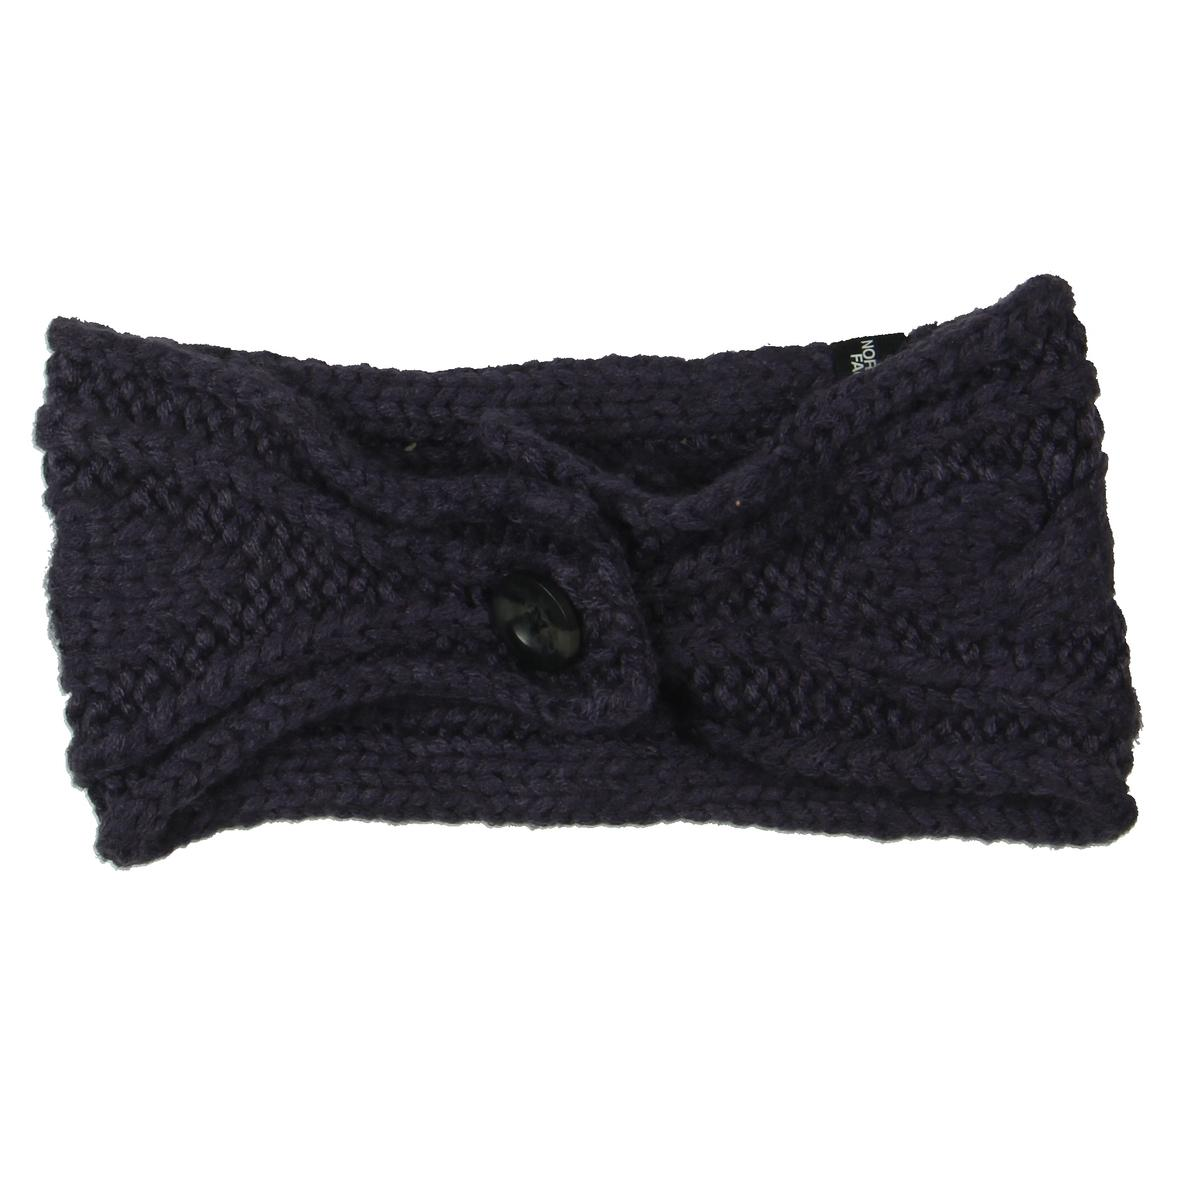 937f28b58c87f Details about The North Face Womens Chunky Purple Cable Knit Winter Ear  Warmers O S BHFO 3559